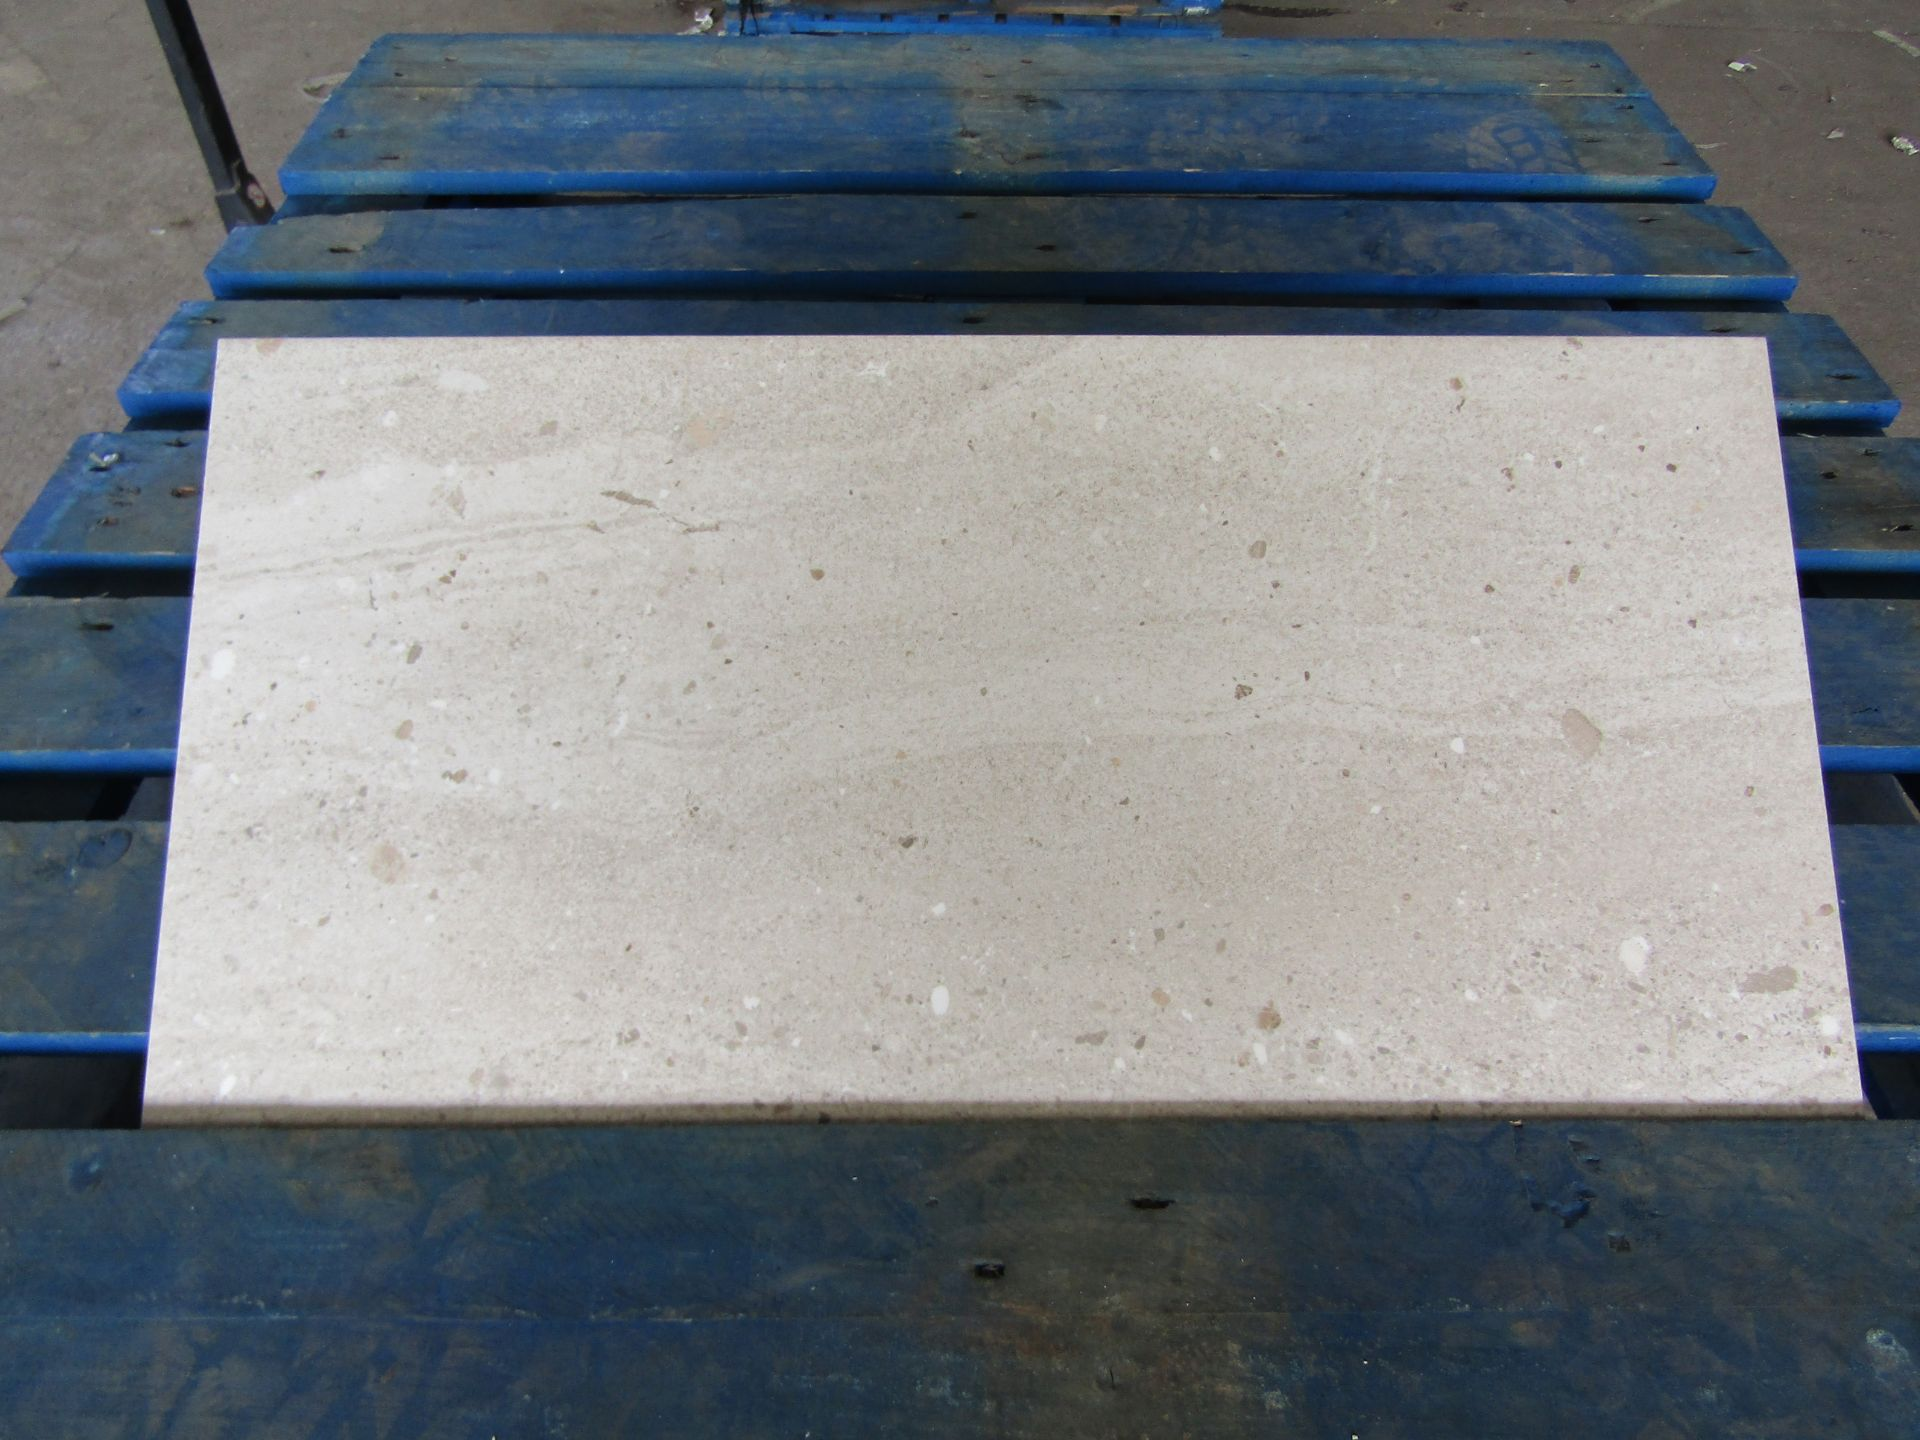 Pallet of 40x Packs of 5 Conglomerate warm Sands Matt Finish 300x600 wall and Floor Tiles By